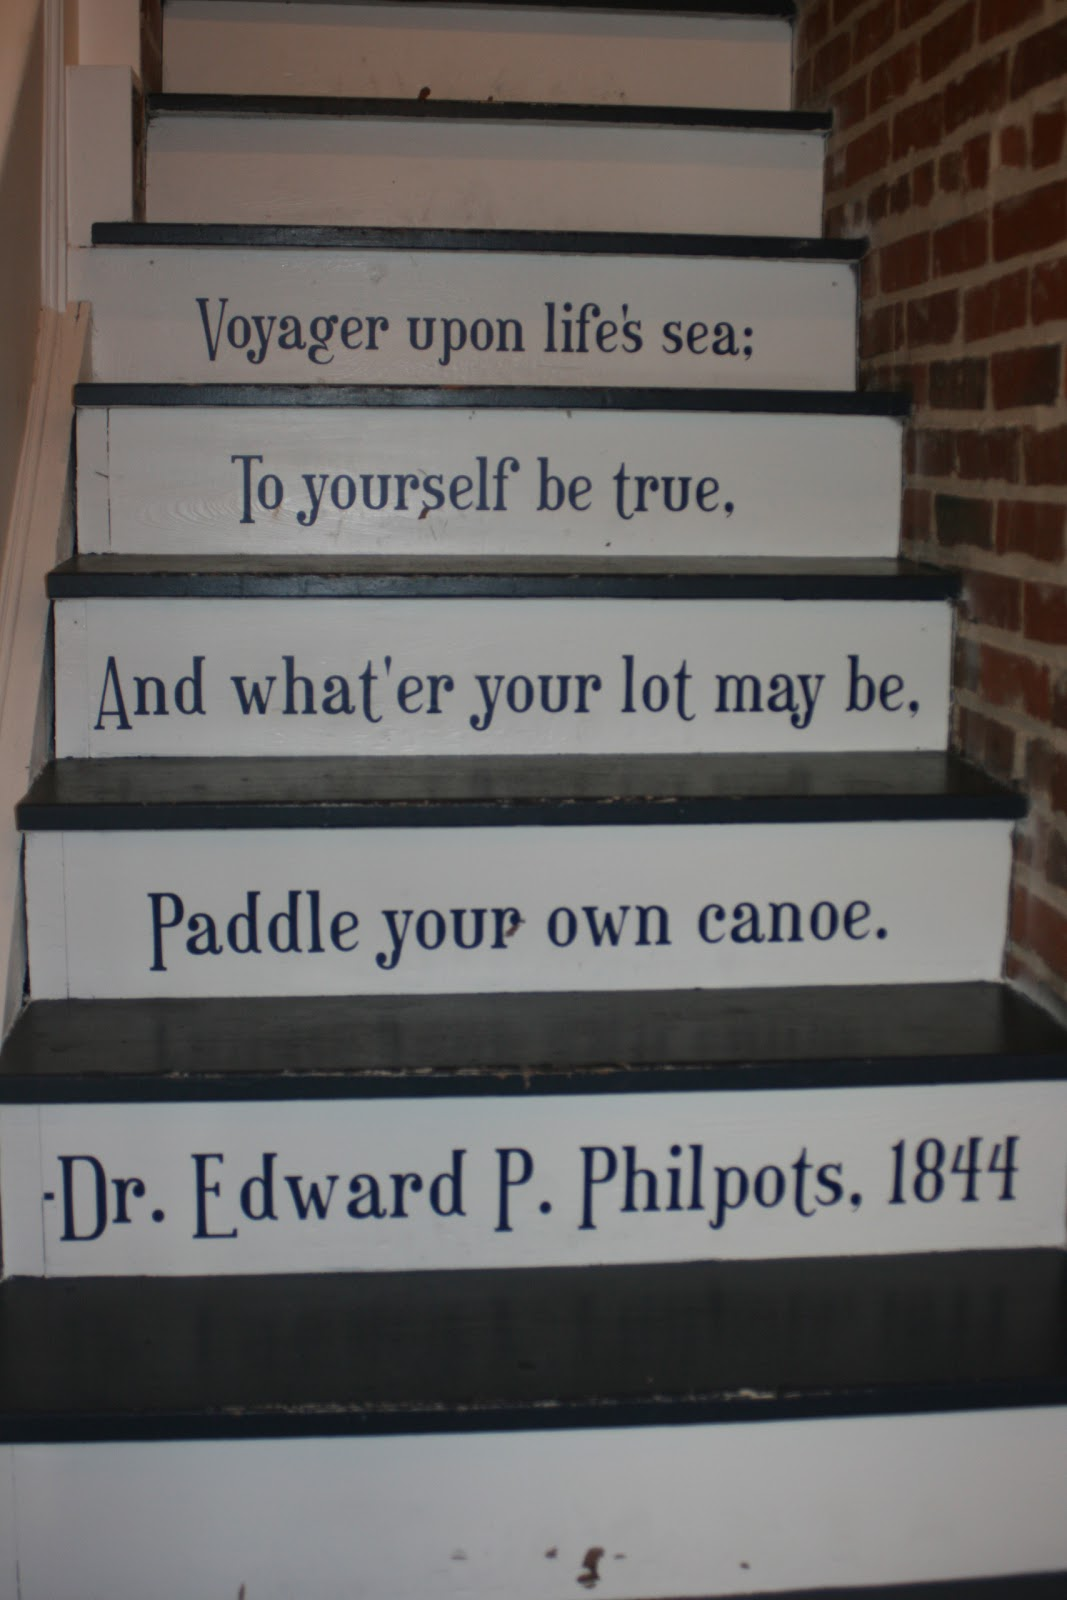 Best Paint For Stairs Painted Basement Steps With Board And Batten Unskinny Boppy Best